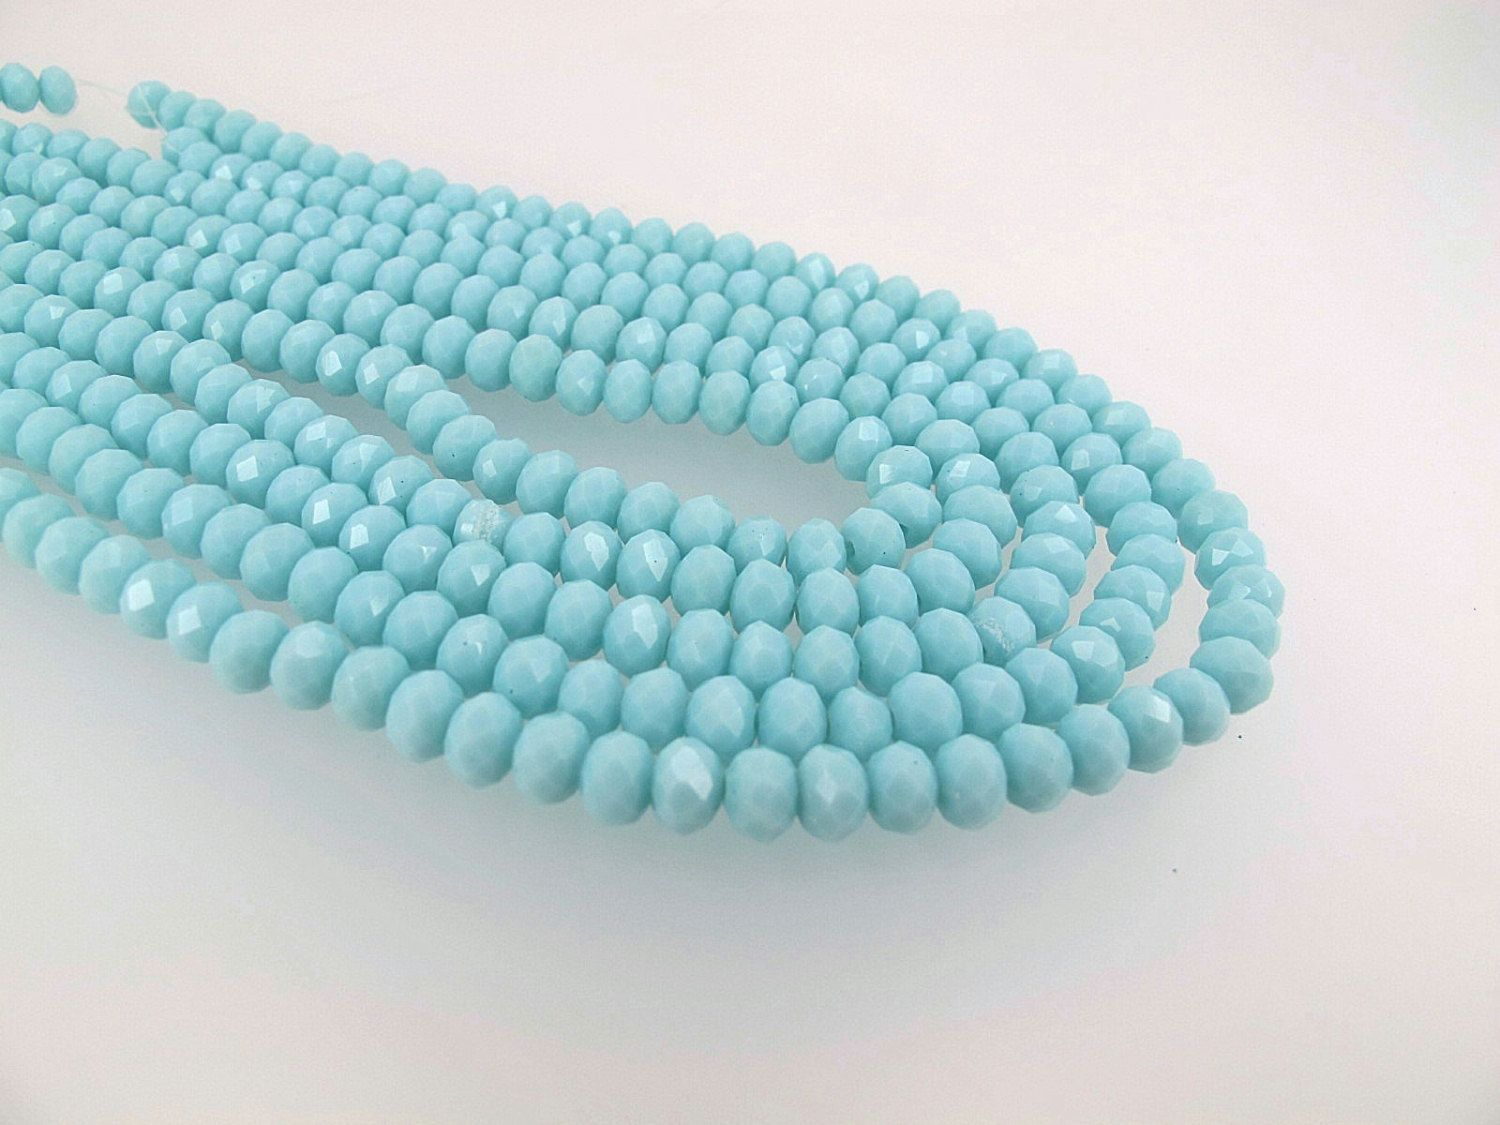 Baby blue faceted glass beads Light blue rondelle beads Full strand DIY loose beads by Susiesgem on Etsy